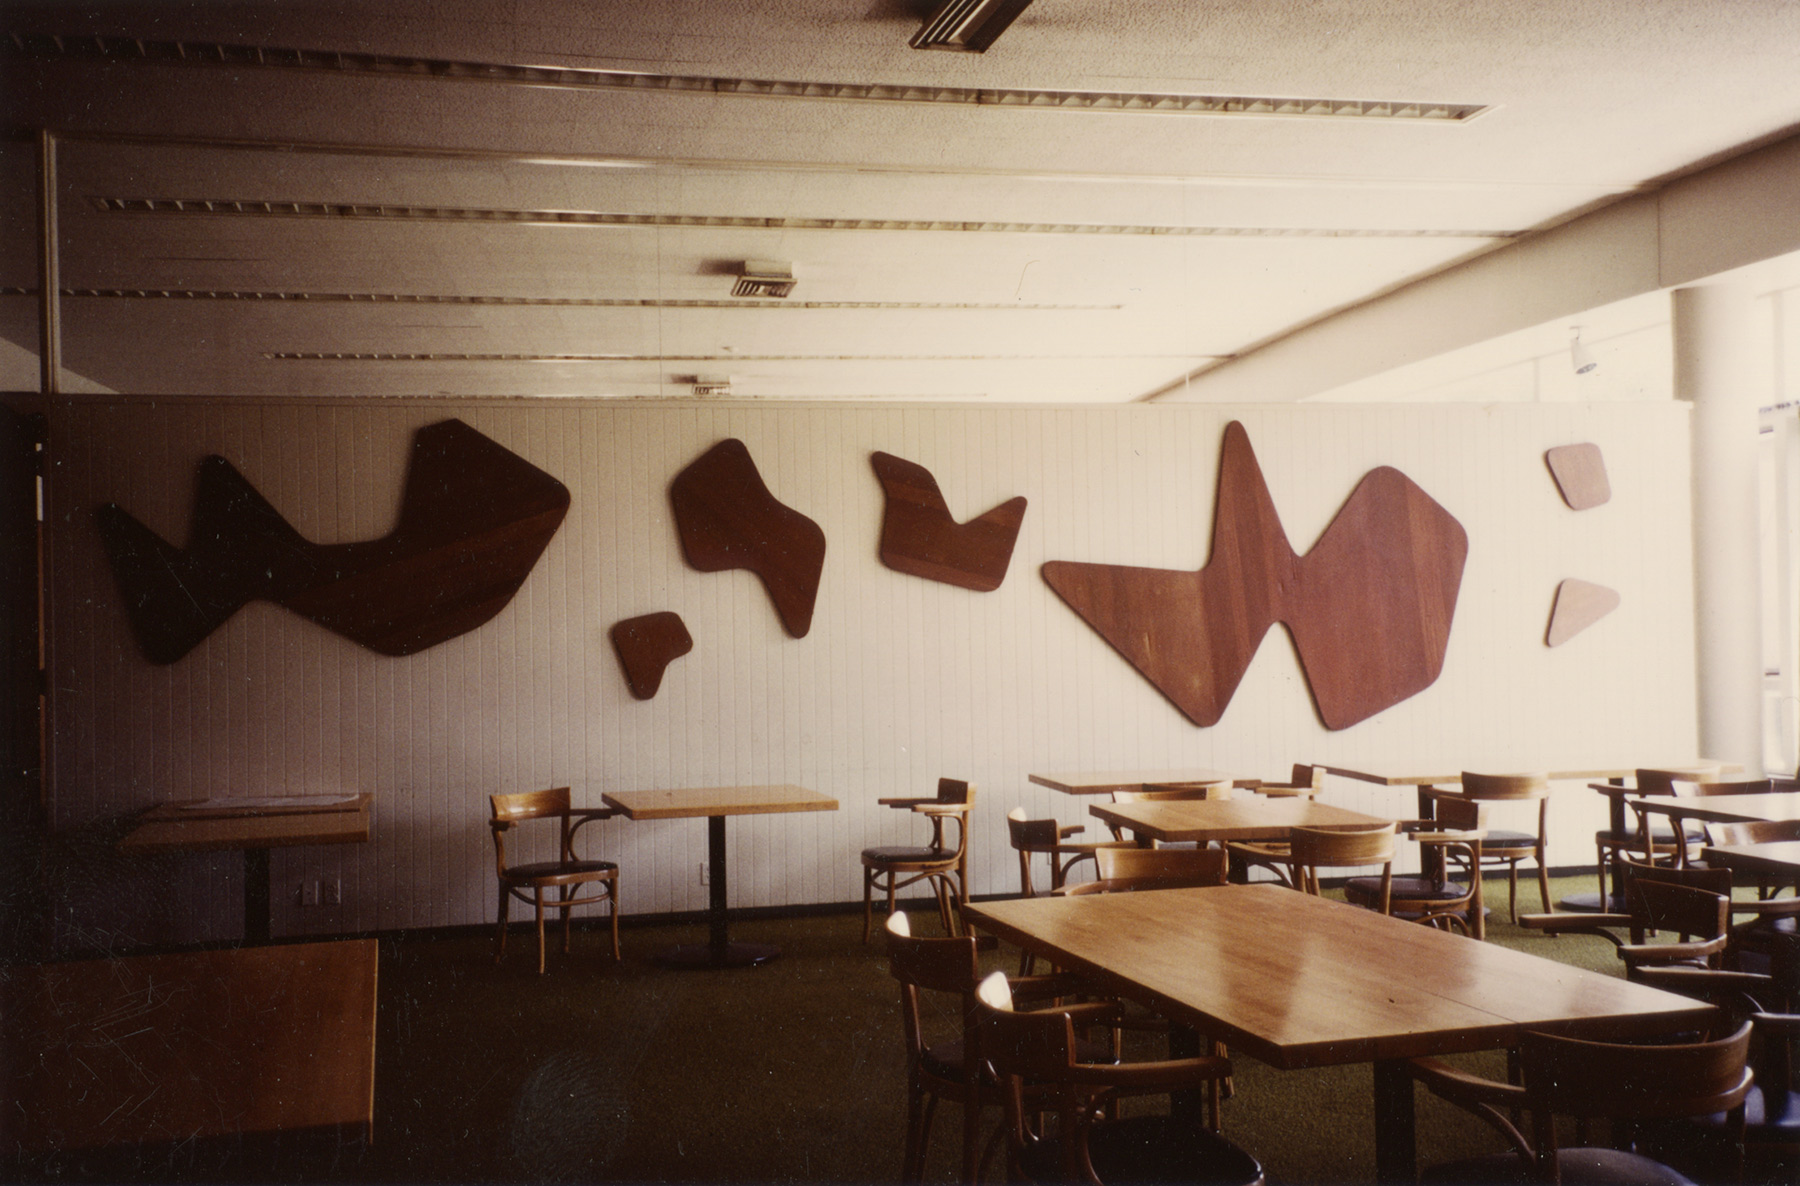 "North wall of Constellations II, 1985. Harvard Law School Buildings Collection, Special Collections, Harvard Law School Library, Harvard University. Photo: Aimée Bleikasten. Note that the paint has been stripped off of the panels, leaving them with a patchy and uneven ""natural"" finish."